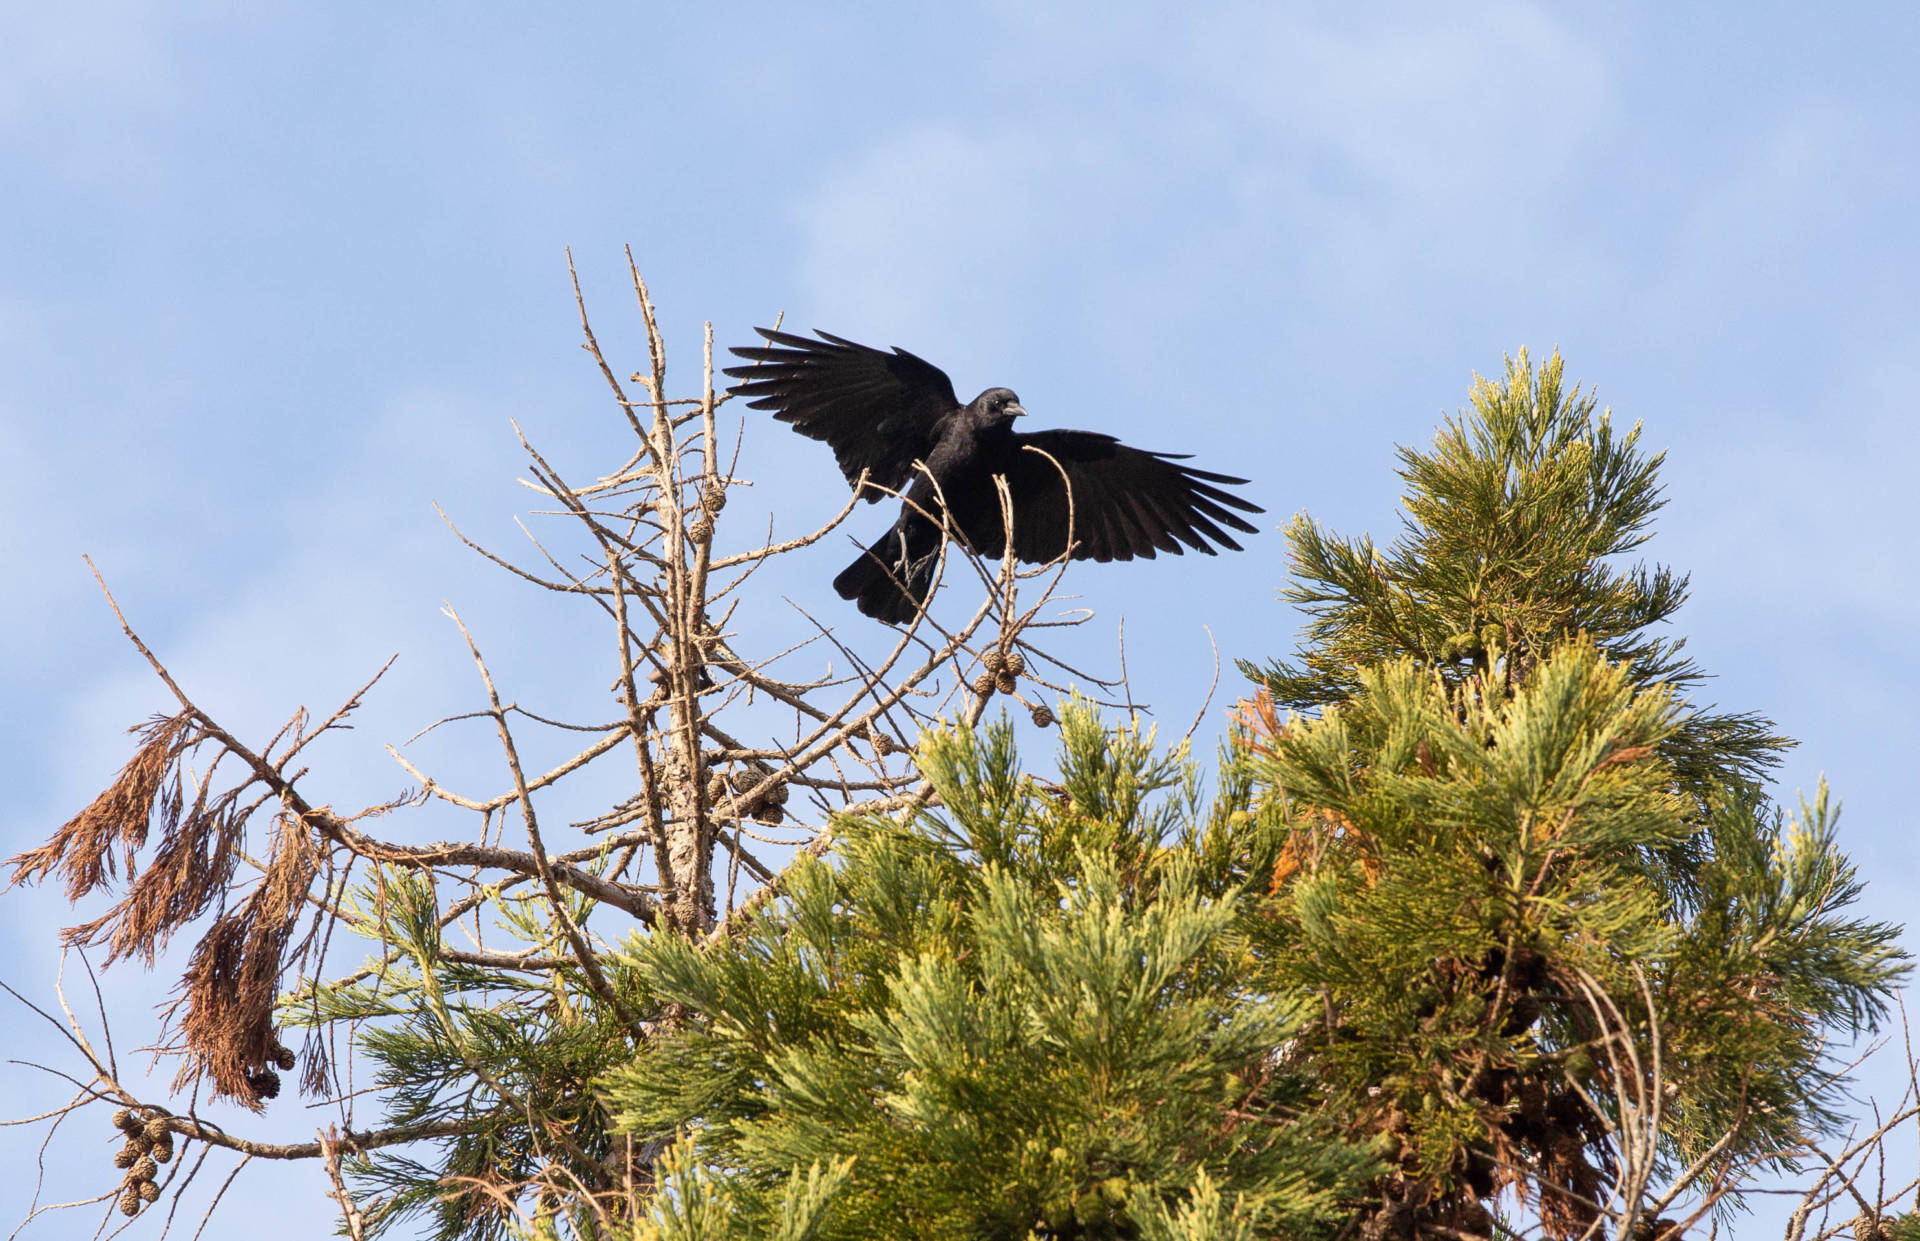 Corvus brachyrhynchos, better known as the common crow, as pictured in a Berkeley backyard.  Dan Brekke/KQED